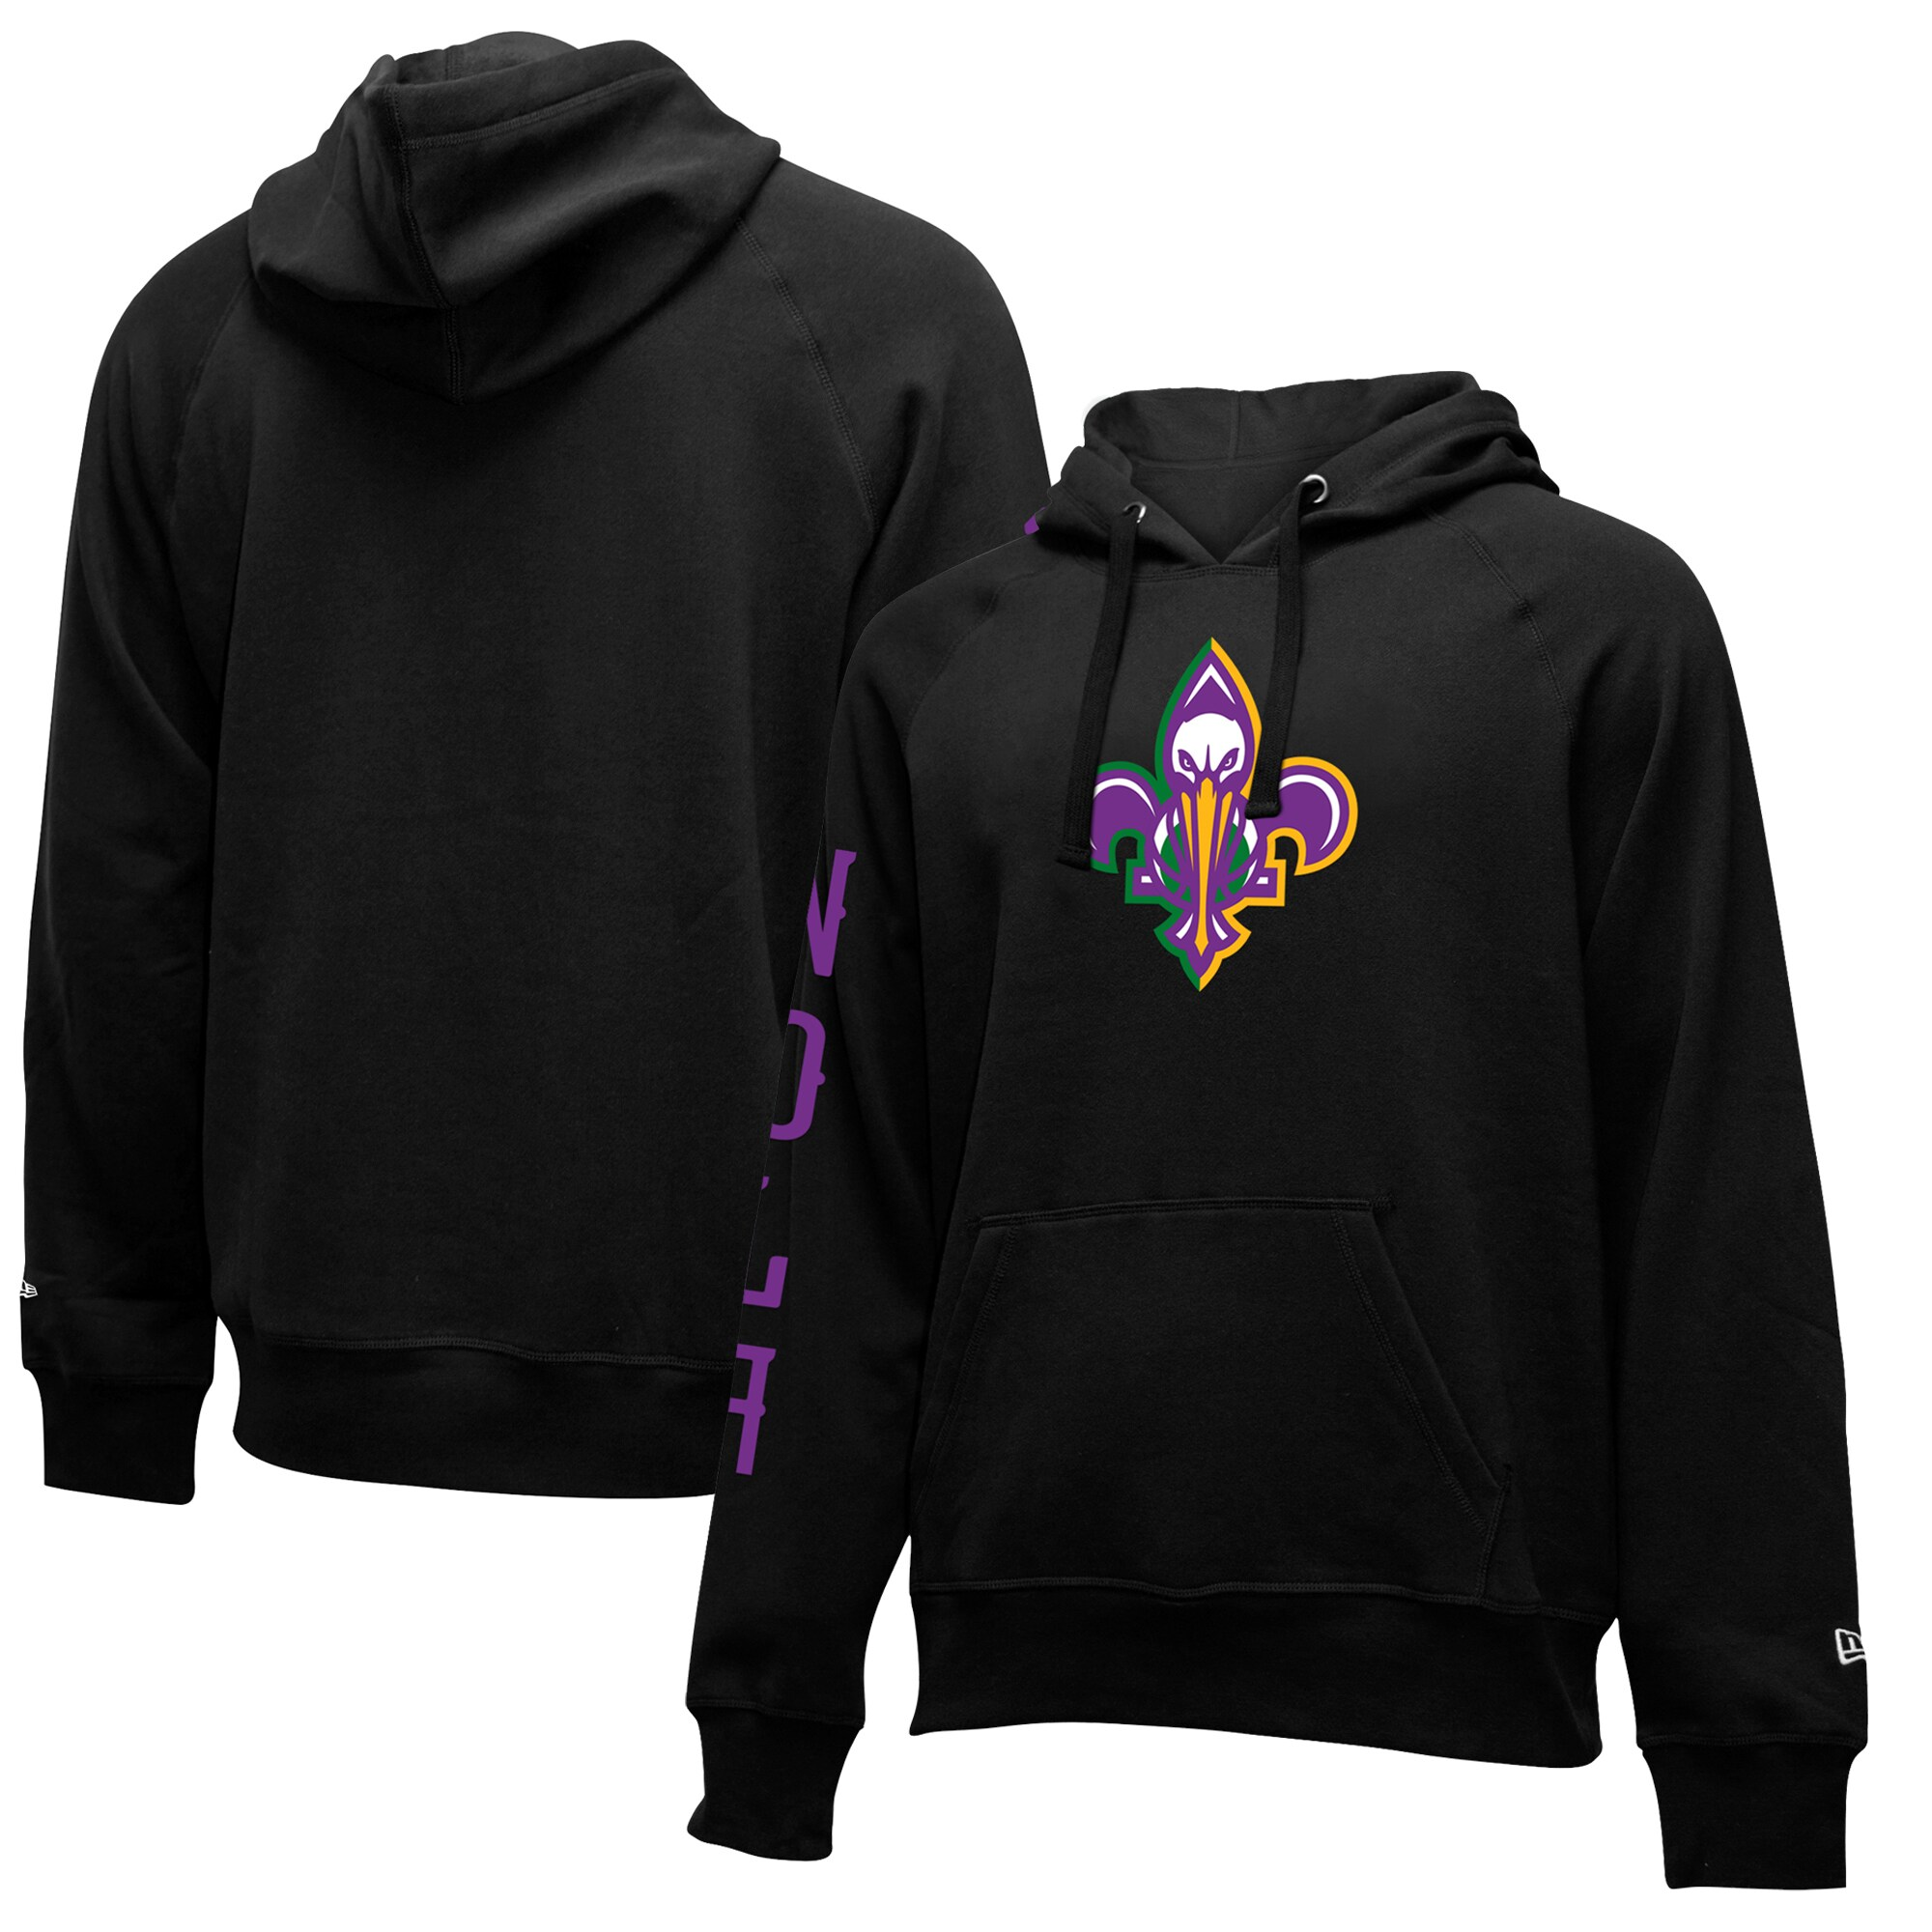 New Orleans Pelicans New Era 2019/20 City Edition Pullover Hoodie - Black